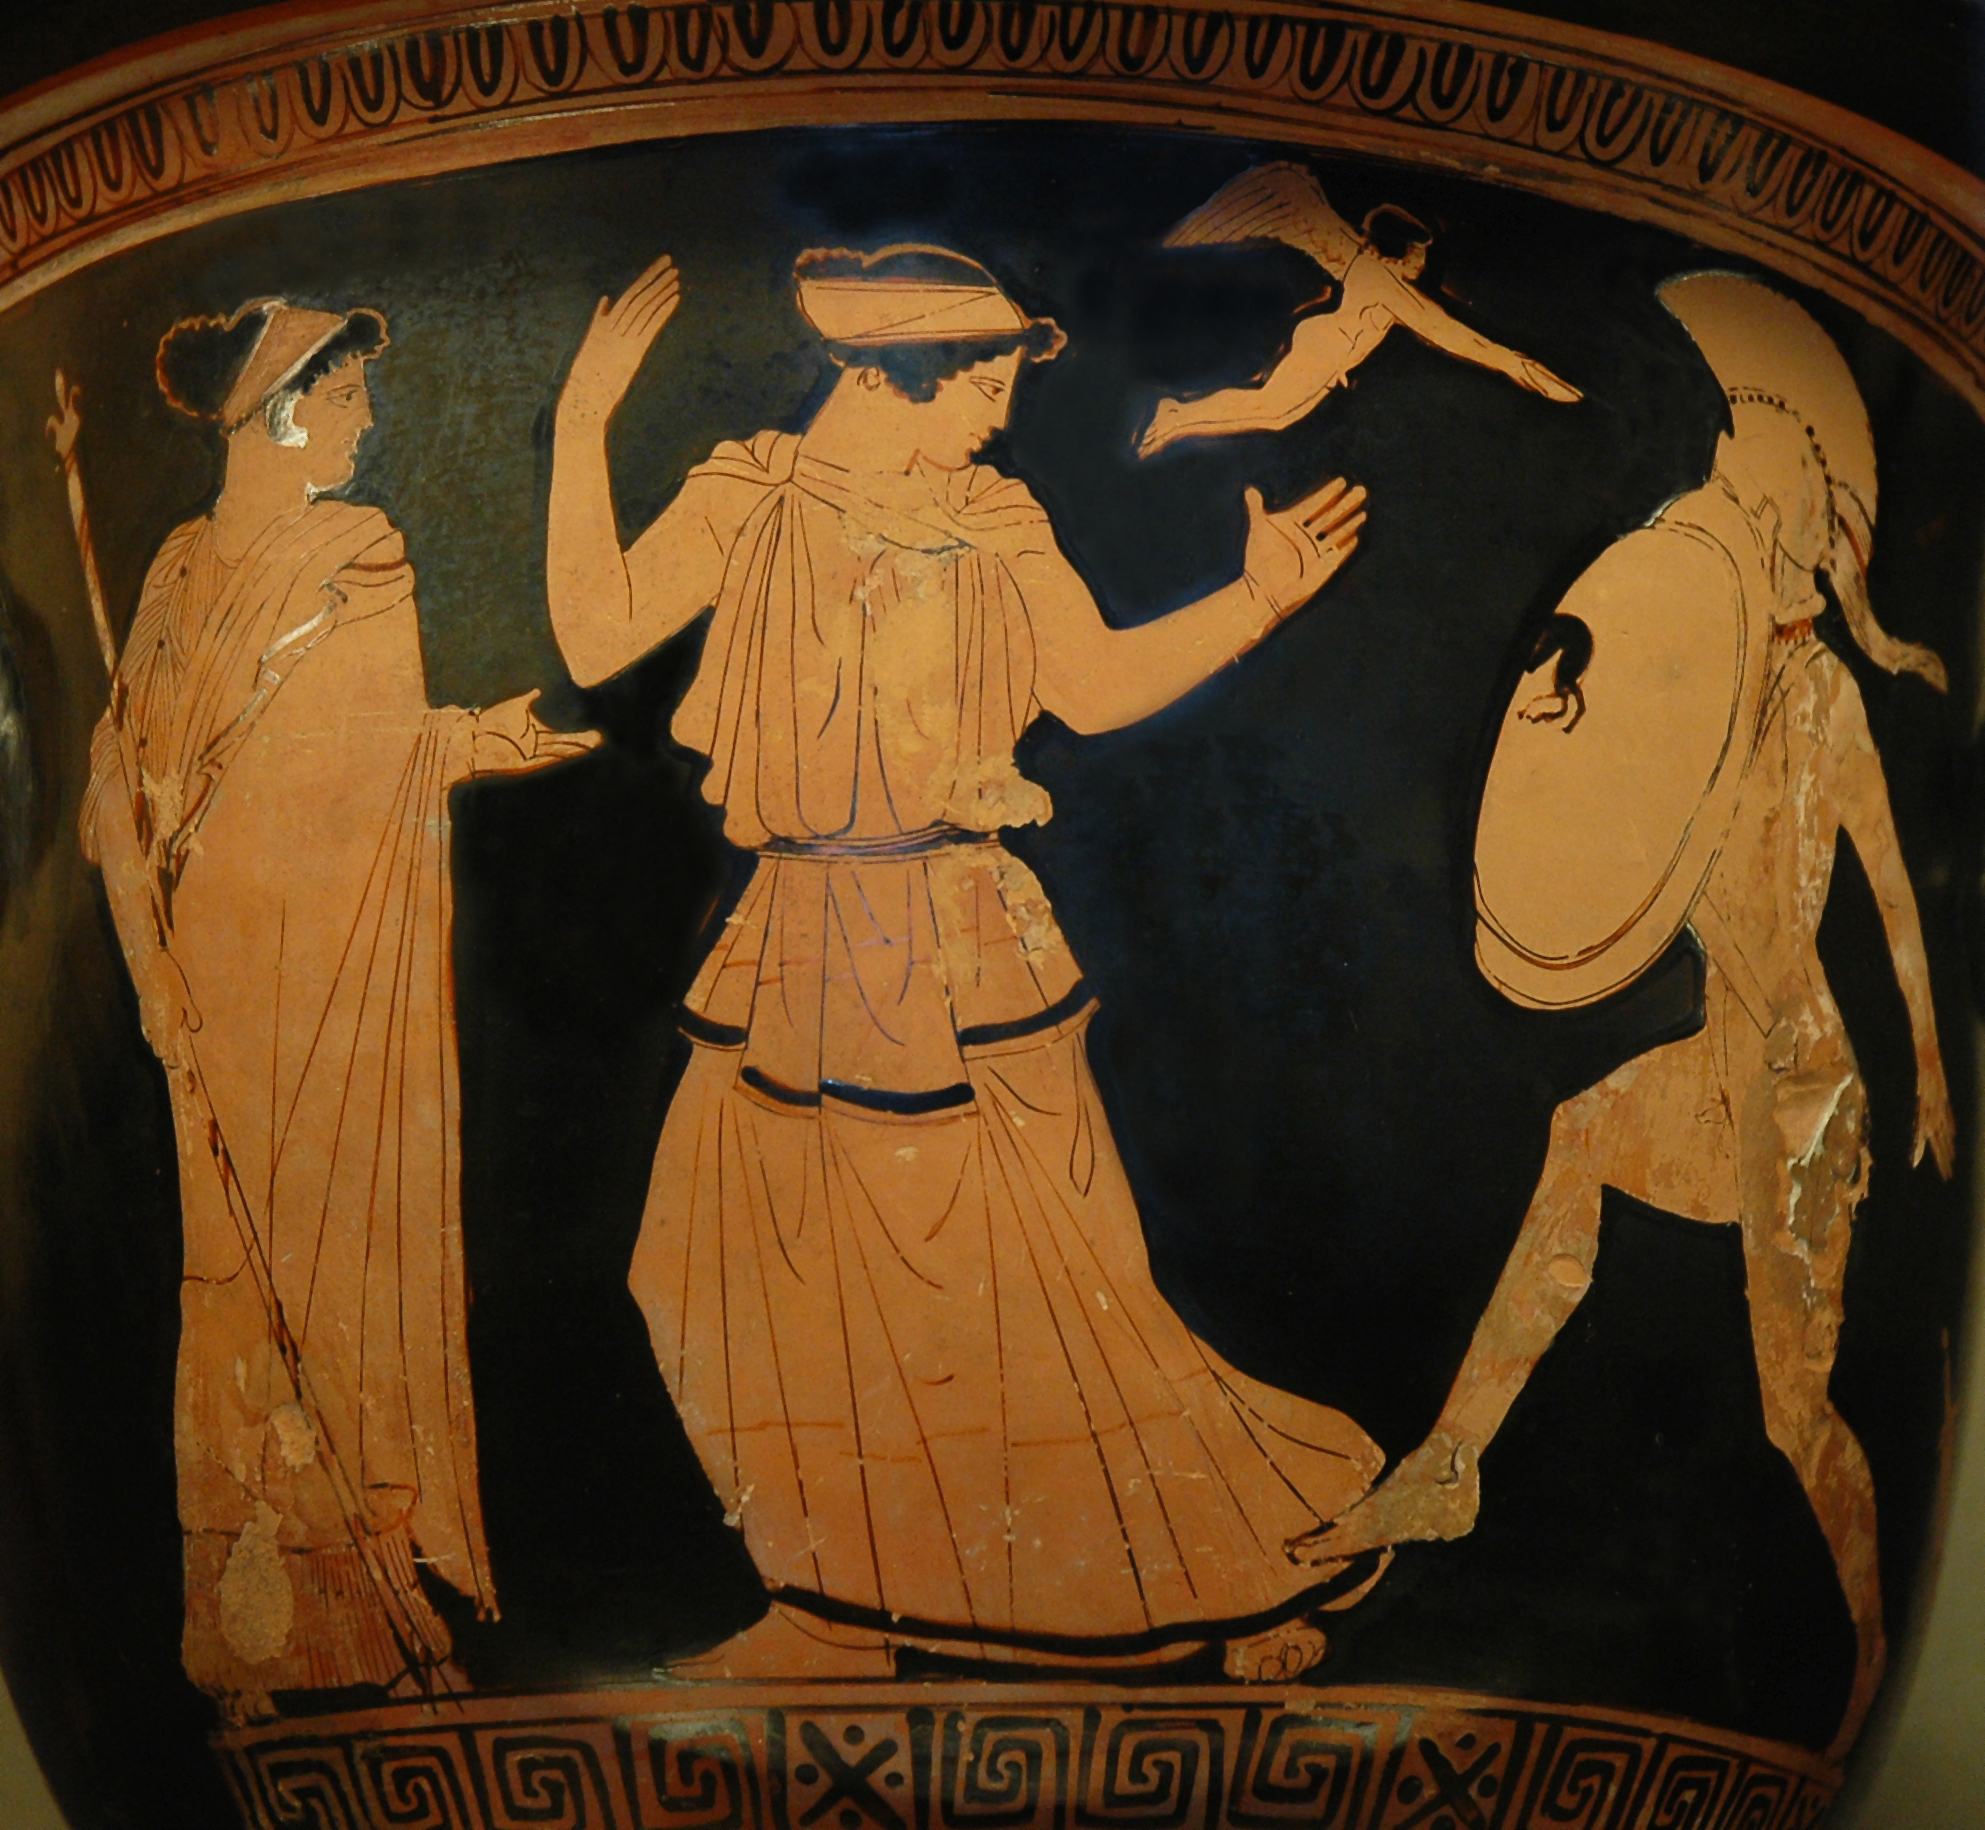 Photo of Greek Vase, Menelaus intends to strike Helen; struck by her beauty, he drops his swords. A flying Eros and Aphrodite (on the left) watch the scene.